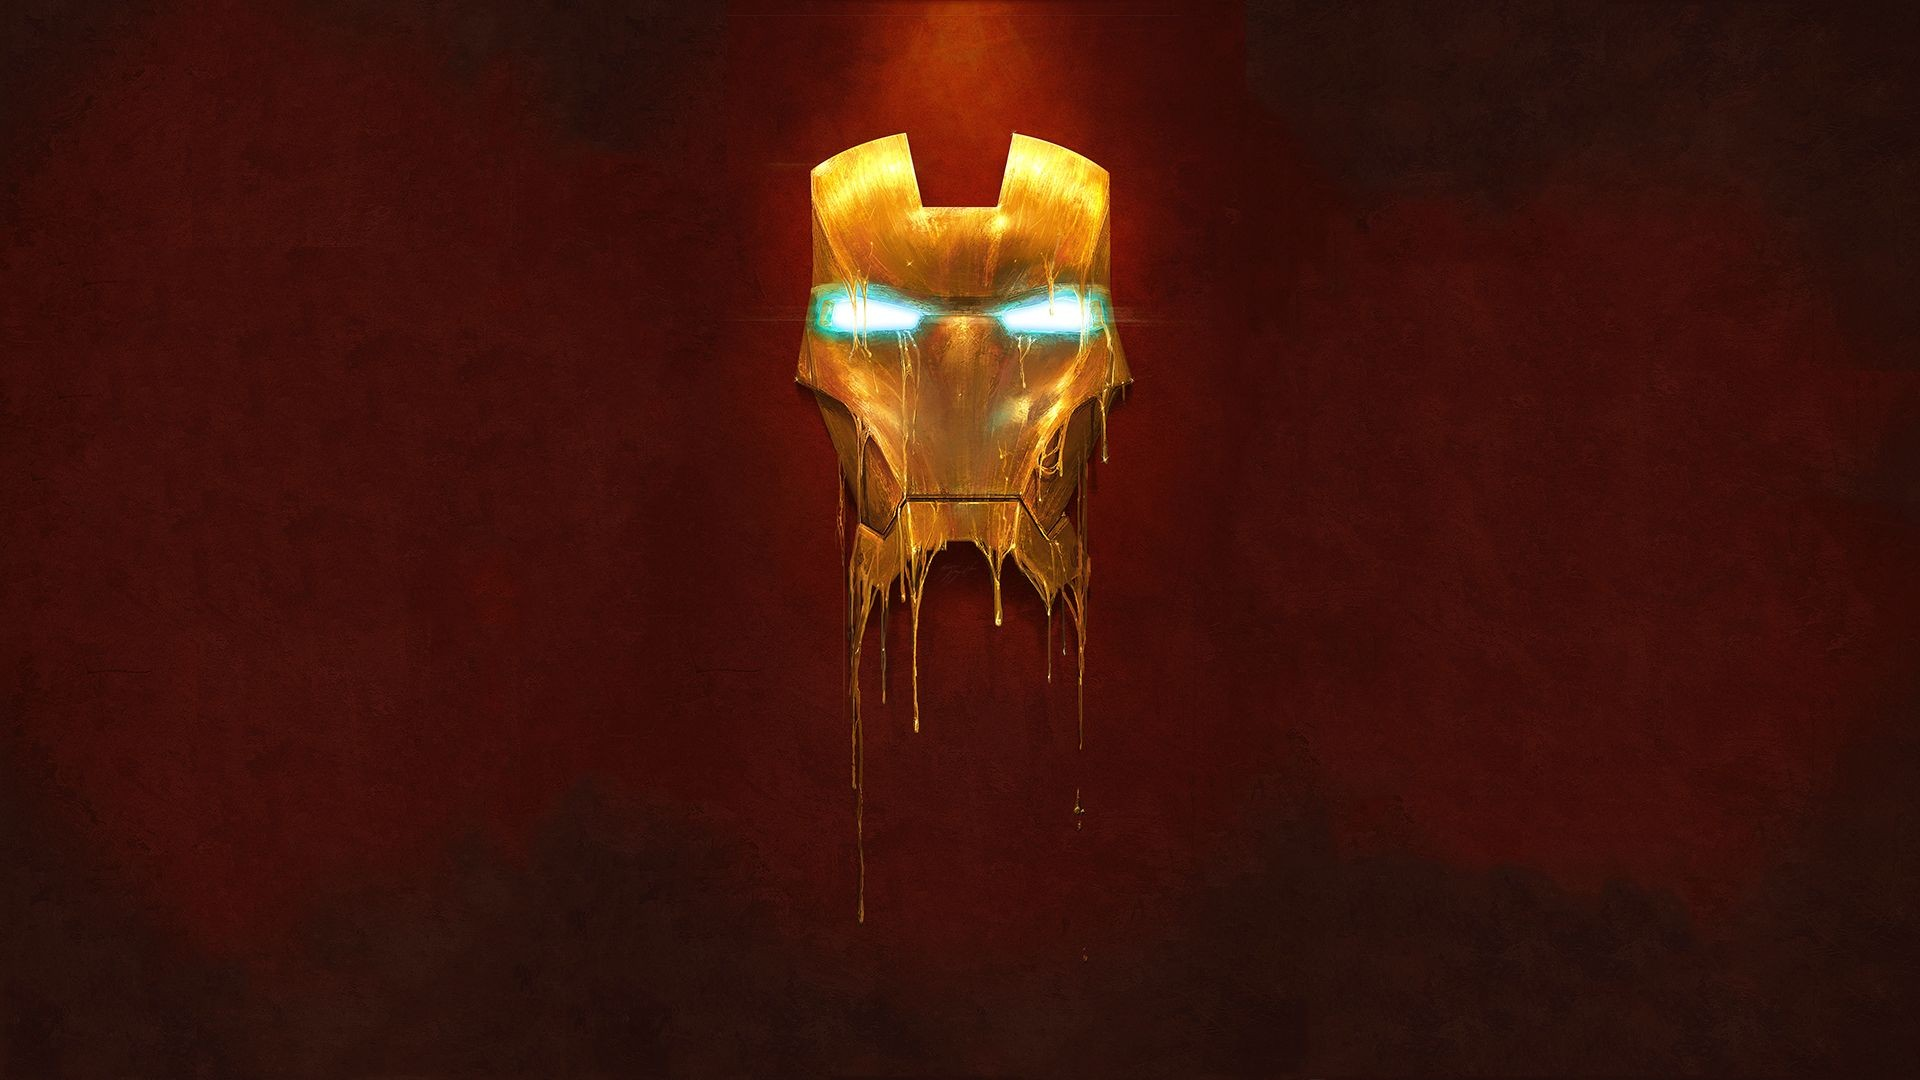 Man 3 in theaters Ive collected some awesome Iron Man wallpapers 1920x1080